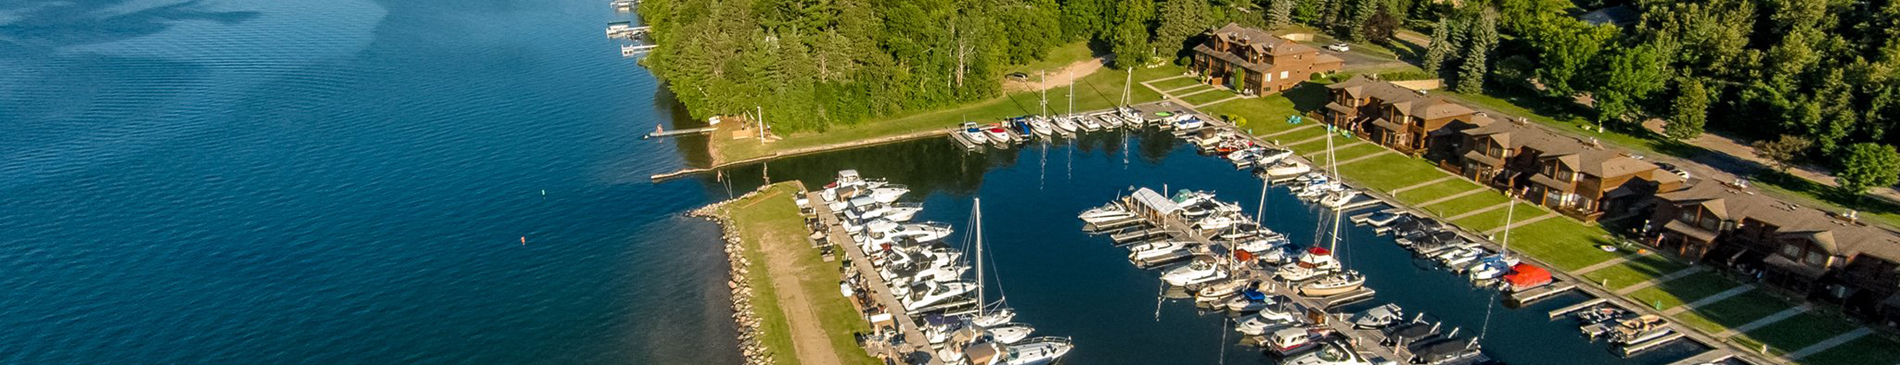 The best things to do in Leech Lake, MN